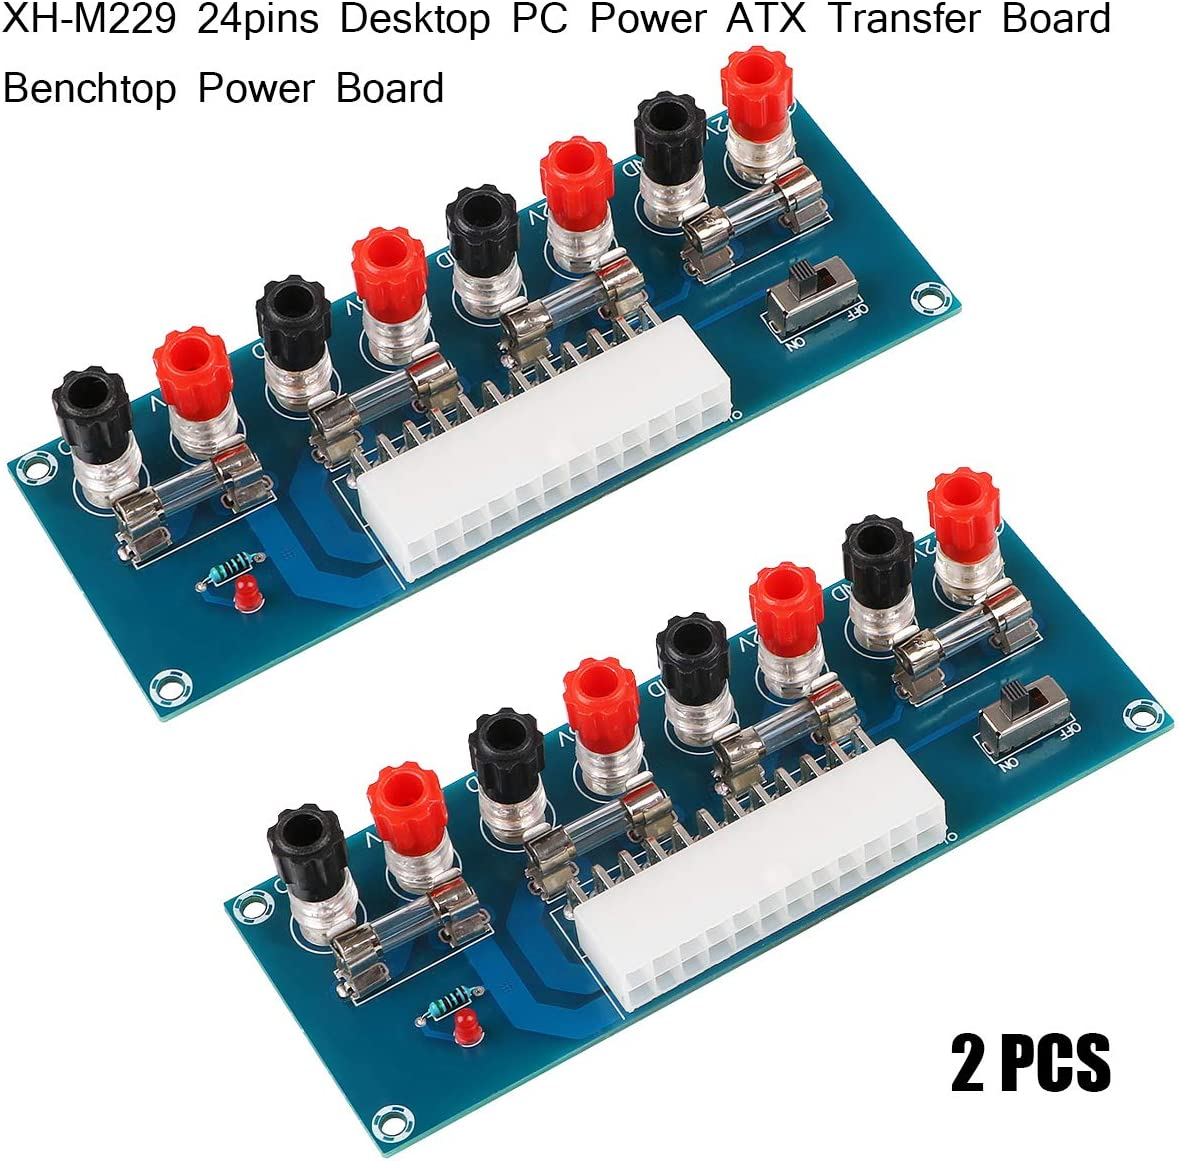 24Pins ATX Benchtop Power Socket Computer PC Power Supply Board Breakout Adapter